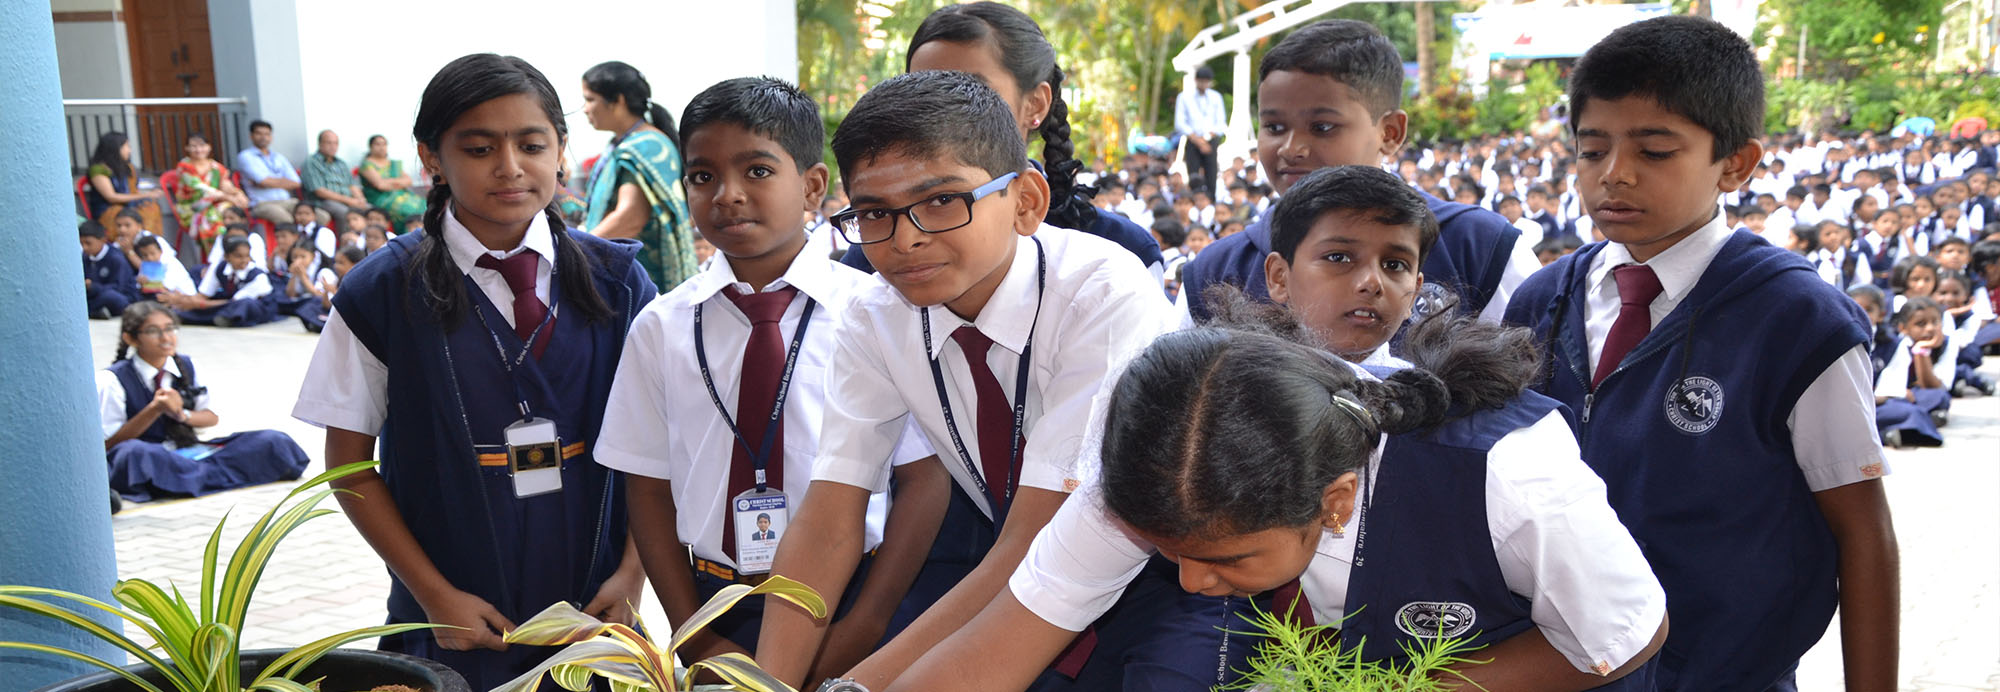 Environment day reminds each mankind about the beauty of nature and the importance to bring the nature and mankind to make a mutual respect with each other with the pledge of `No Destruction` and `Save the Earth`. Christ School is always a step ahead to create awareness about the environmental threats that we are encountering every day.